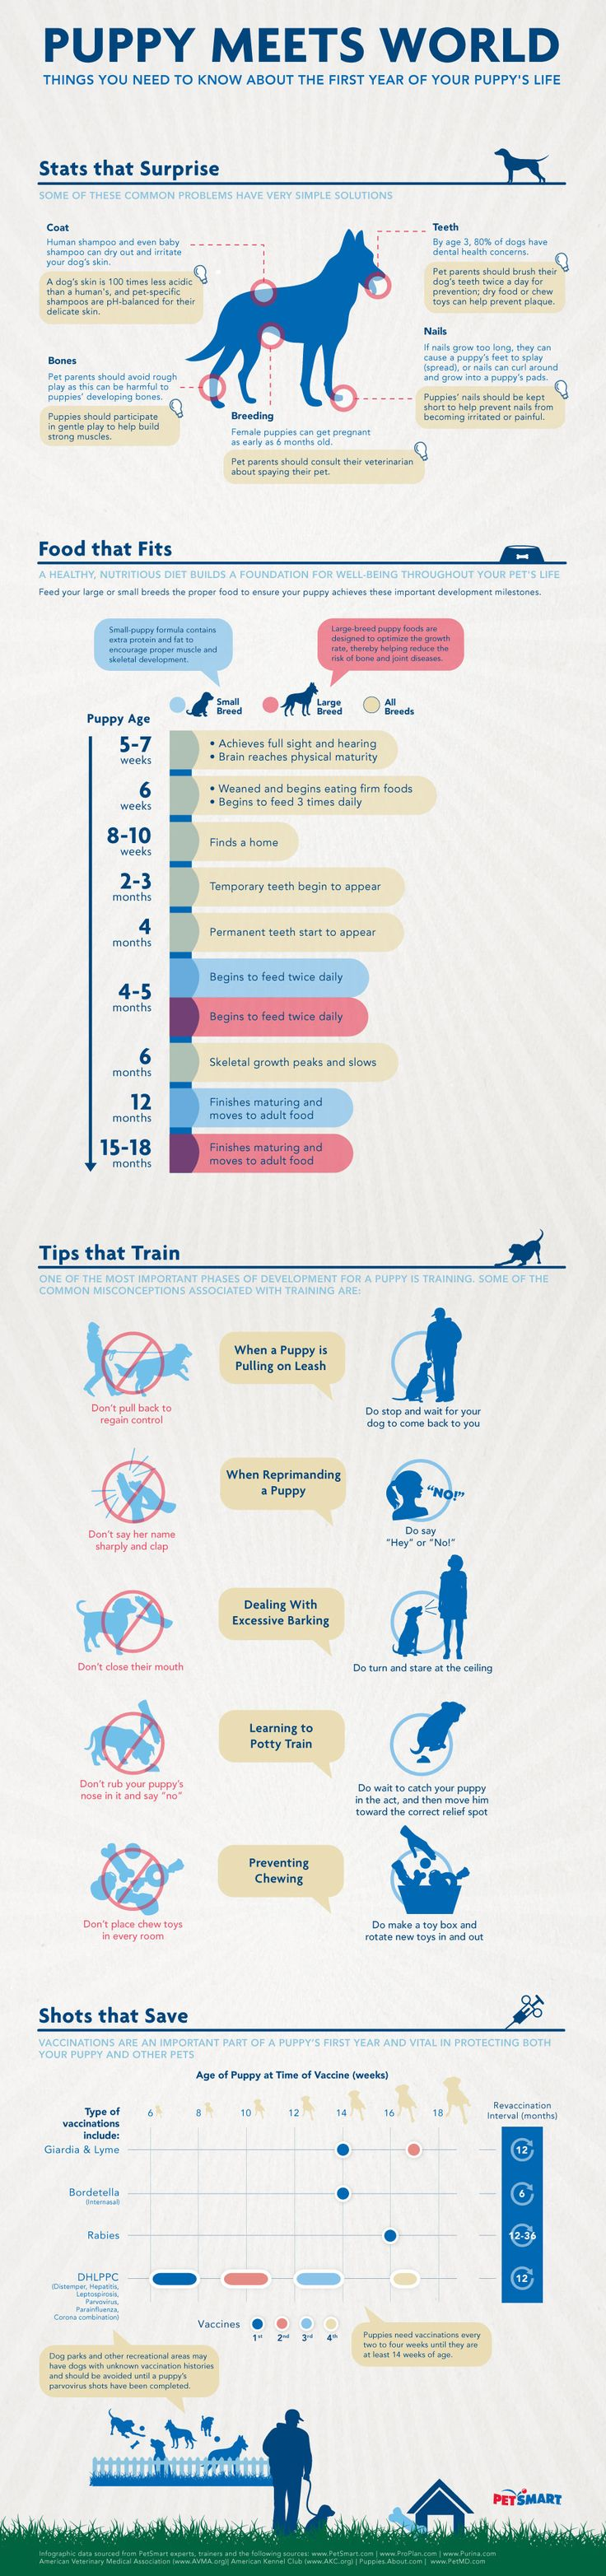 Spring definitely means puppy season! If this spring might mean a new puppy in your household, be sure to check out the fun infographic below that we just received from PetSmart. It includes information on everything from nutrition to puppy shots. For more information on the special needs of puppies as well as puppy supplies, …